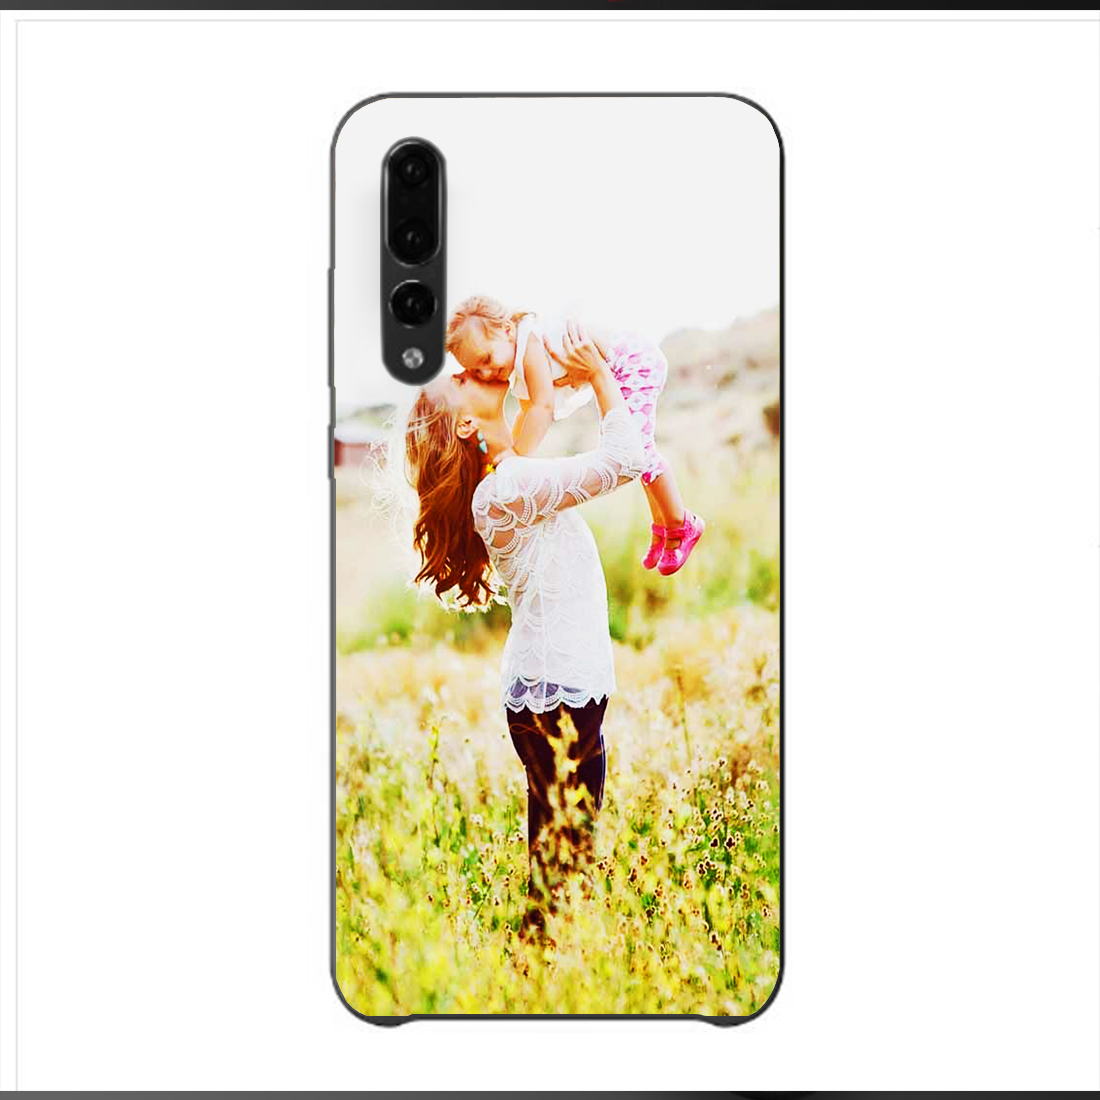 DK Huawei p20 p10 p8 p9 lite series fashion phone case black TPU Cover for Customize your own picture DIY pattern Photo Coque in Half wrapped Cases from Cellphones Telecommunications